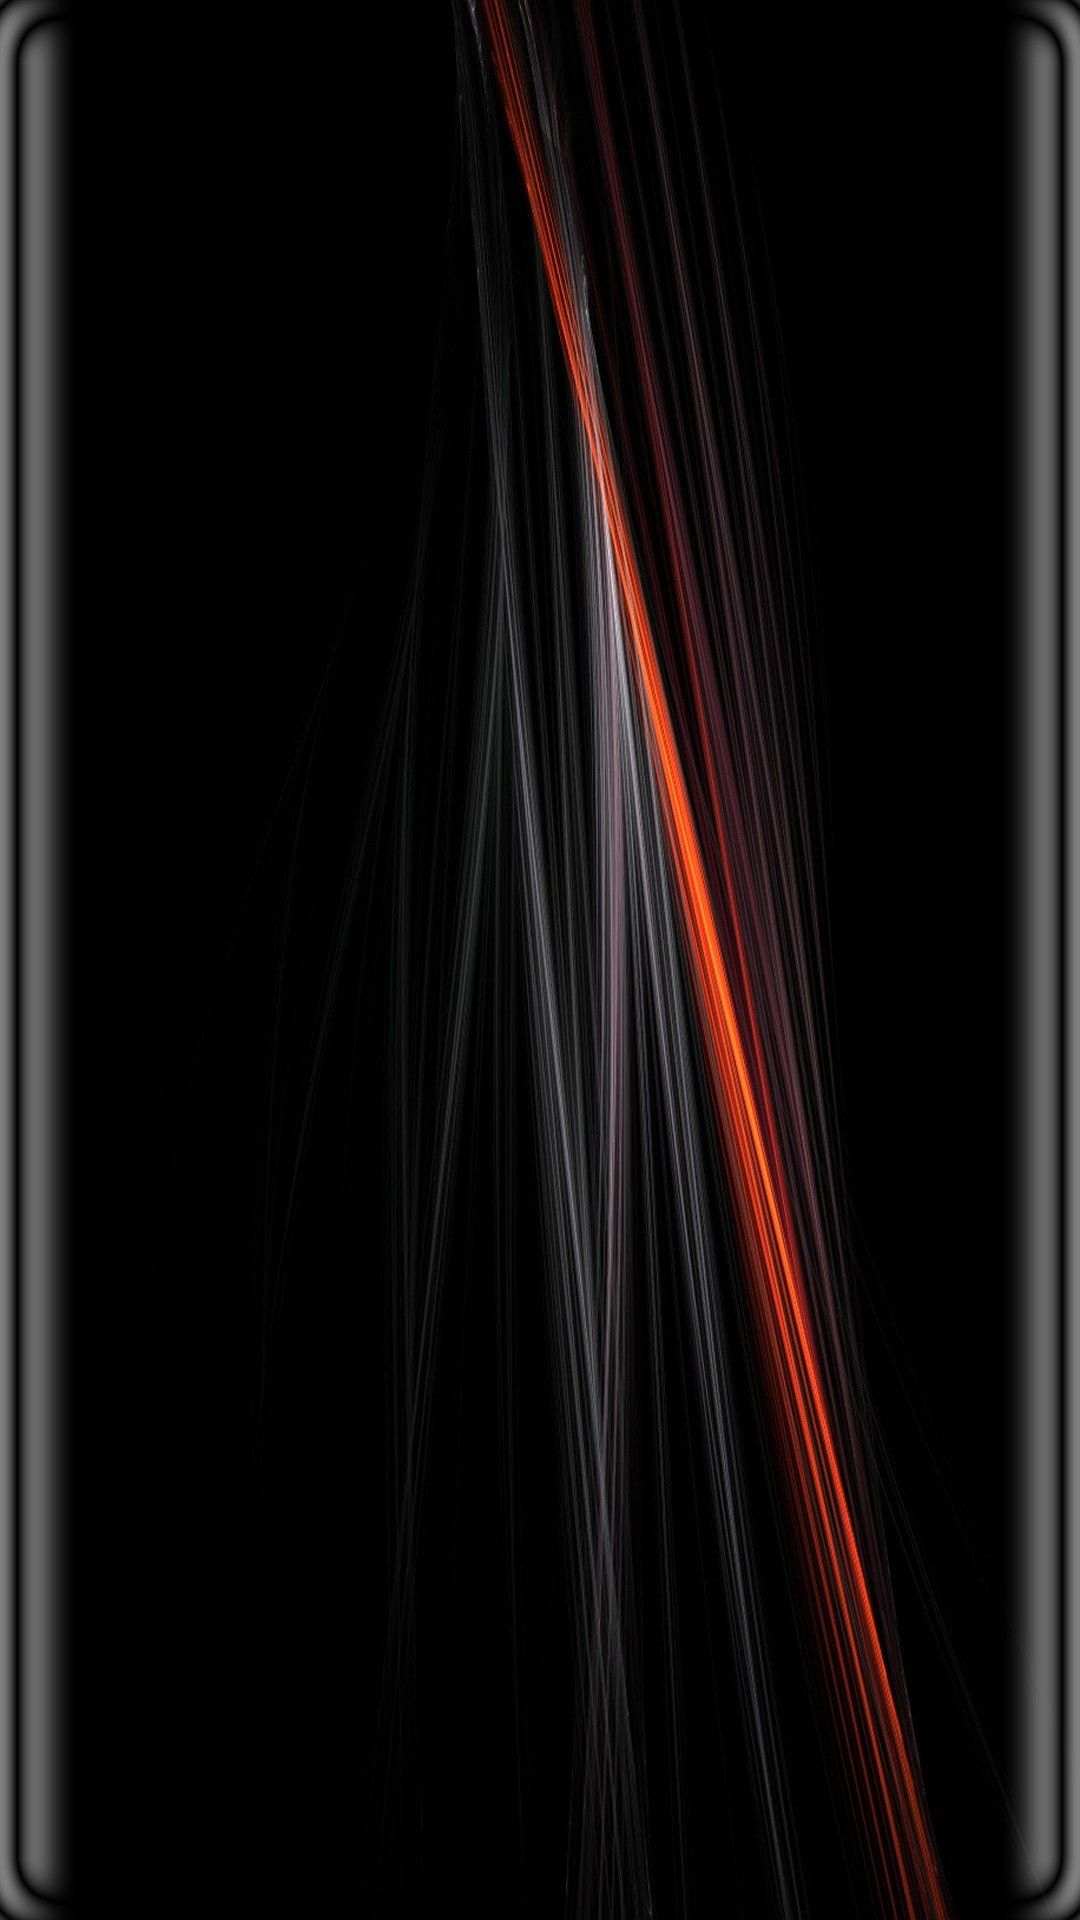 Samsung iPhone Edge PhoneTelefon 3D Wallpaper 1080x1920